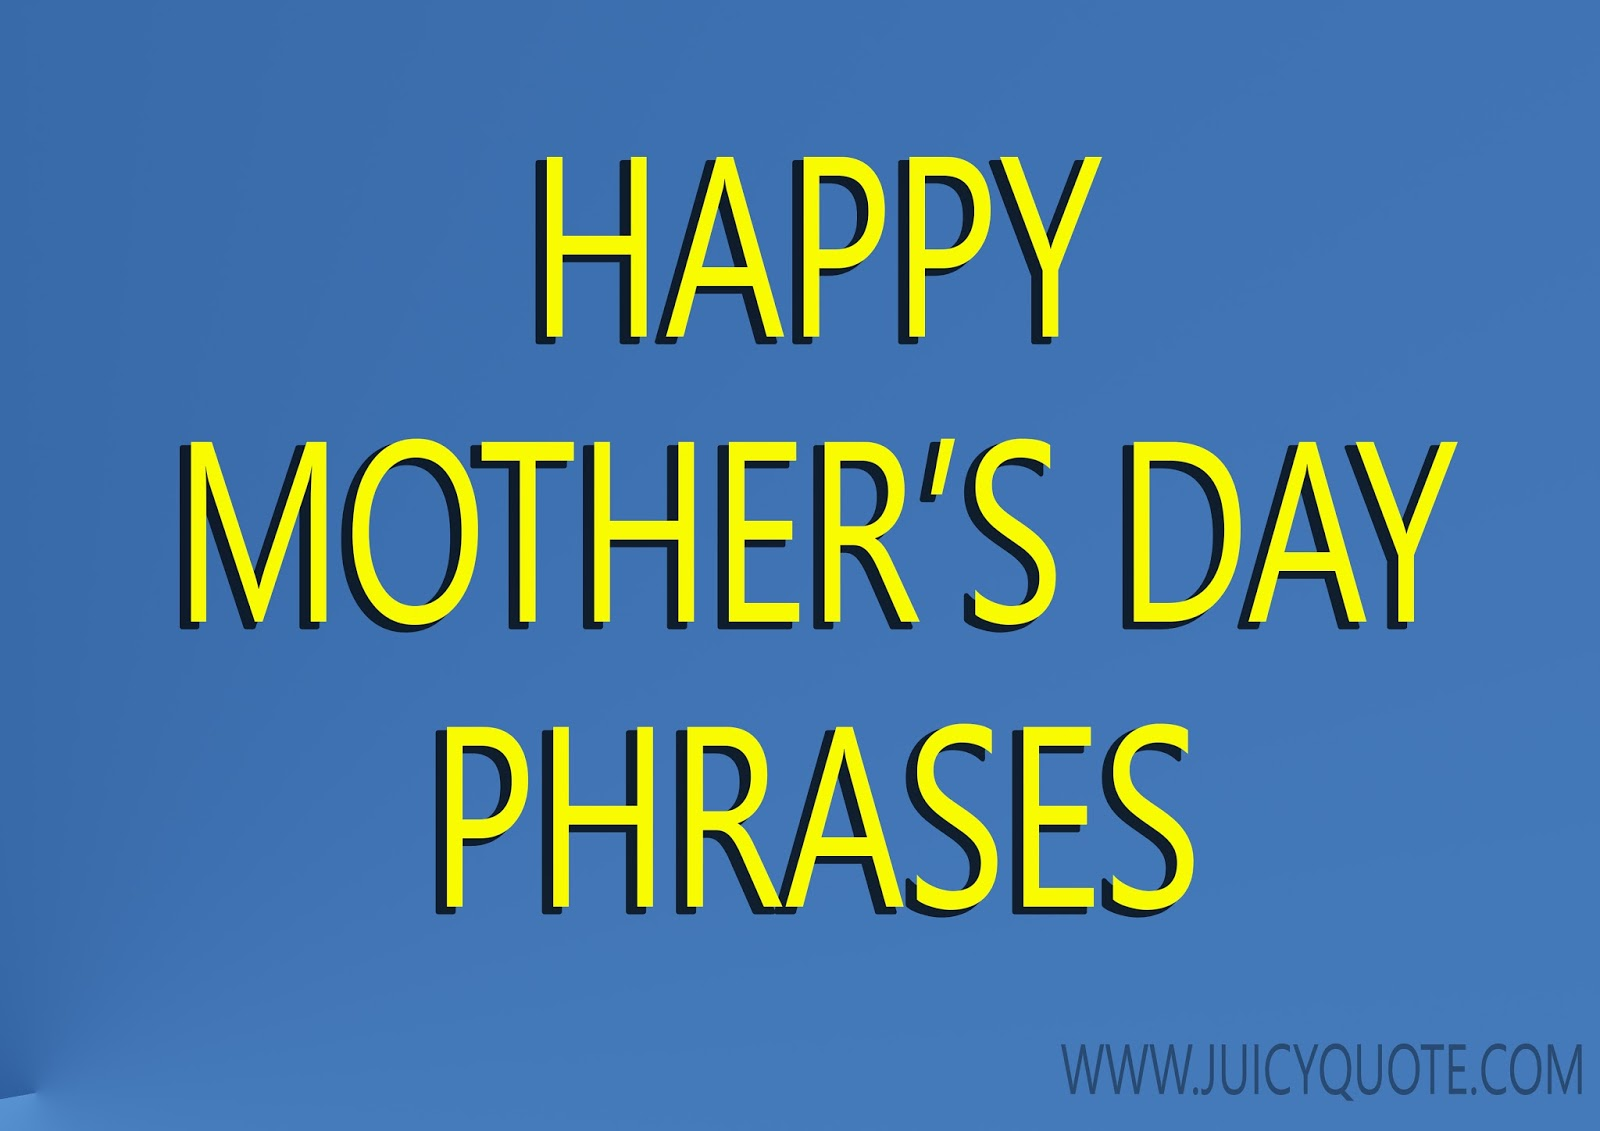 Happy Mothers Day Wishes Messages And Greetings Juicy Quote